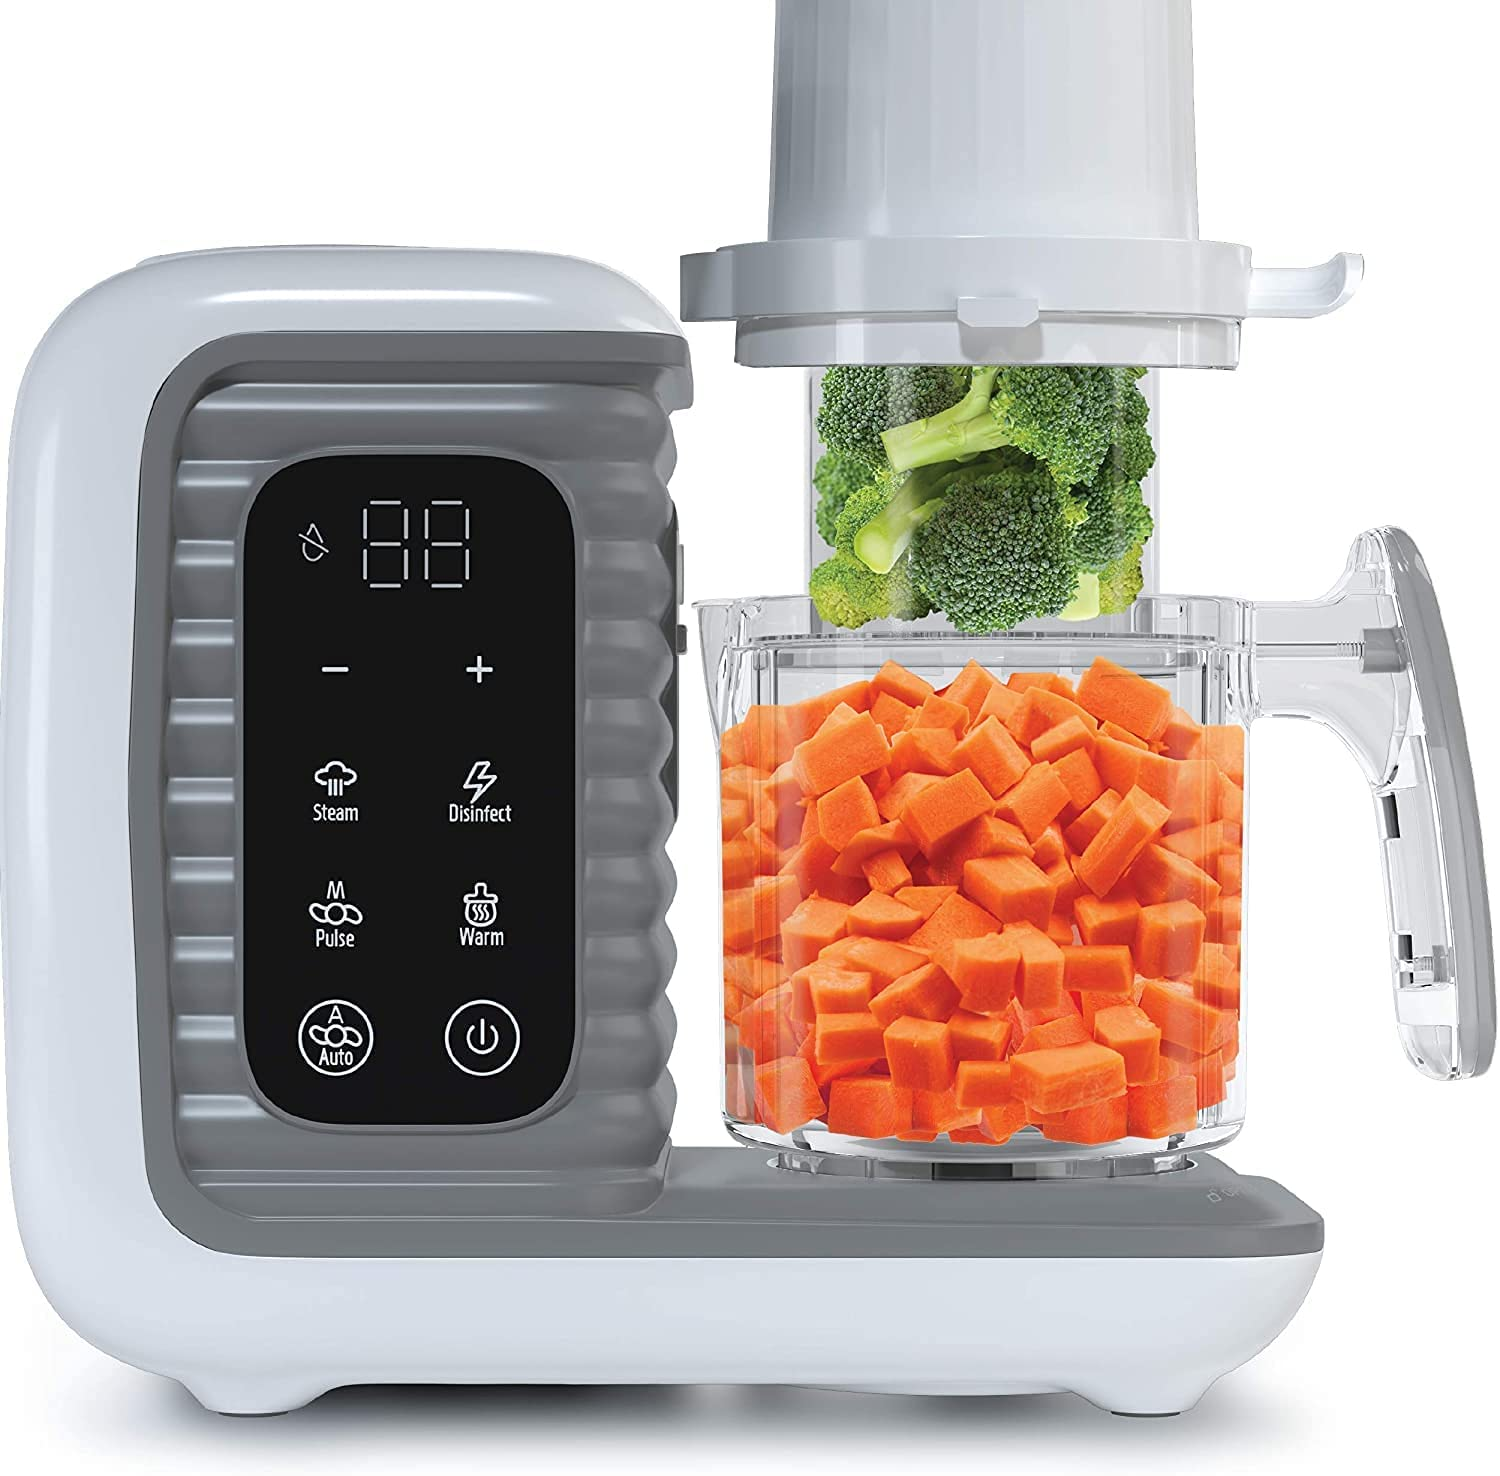 Limited time trial price Atlanta Mall Children of Design 8 in 1 Baby Smart Maker Ste Processor Food